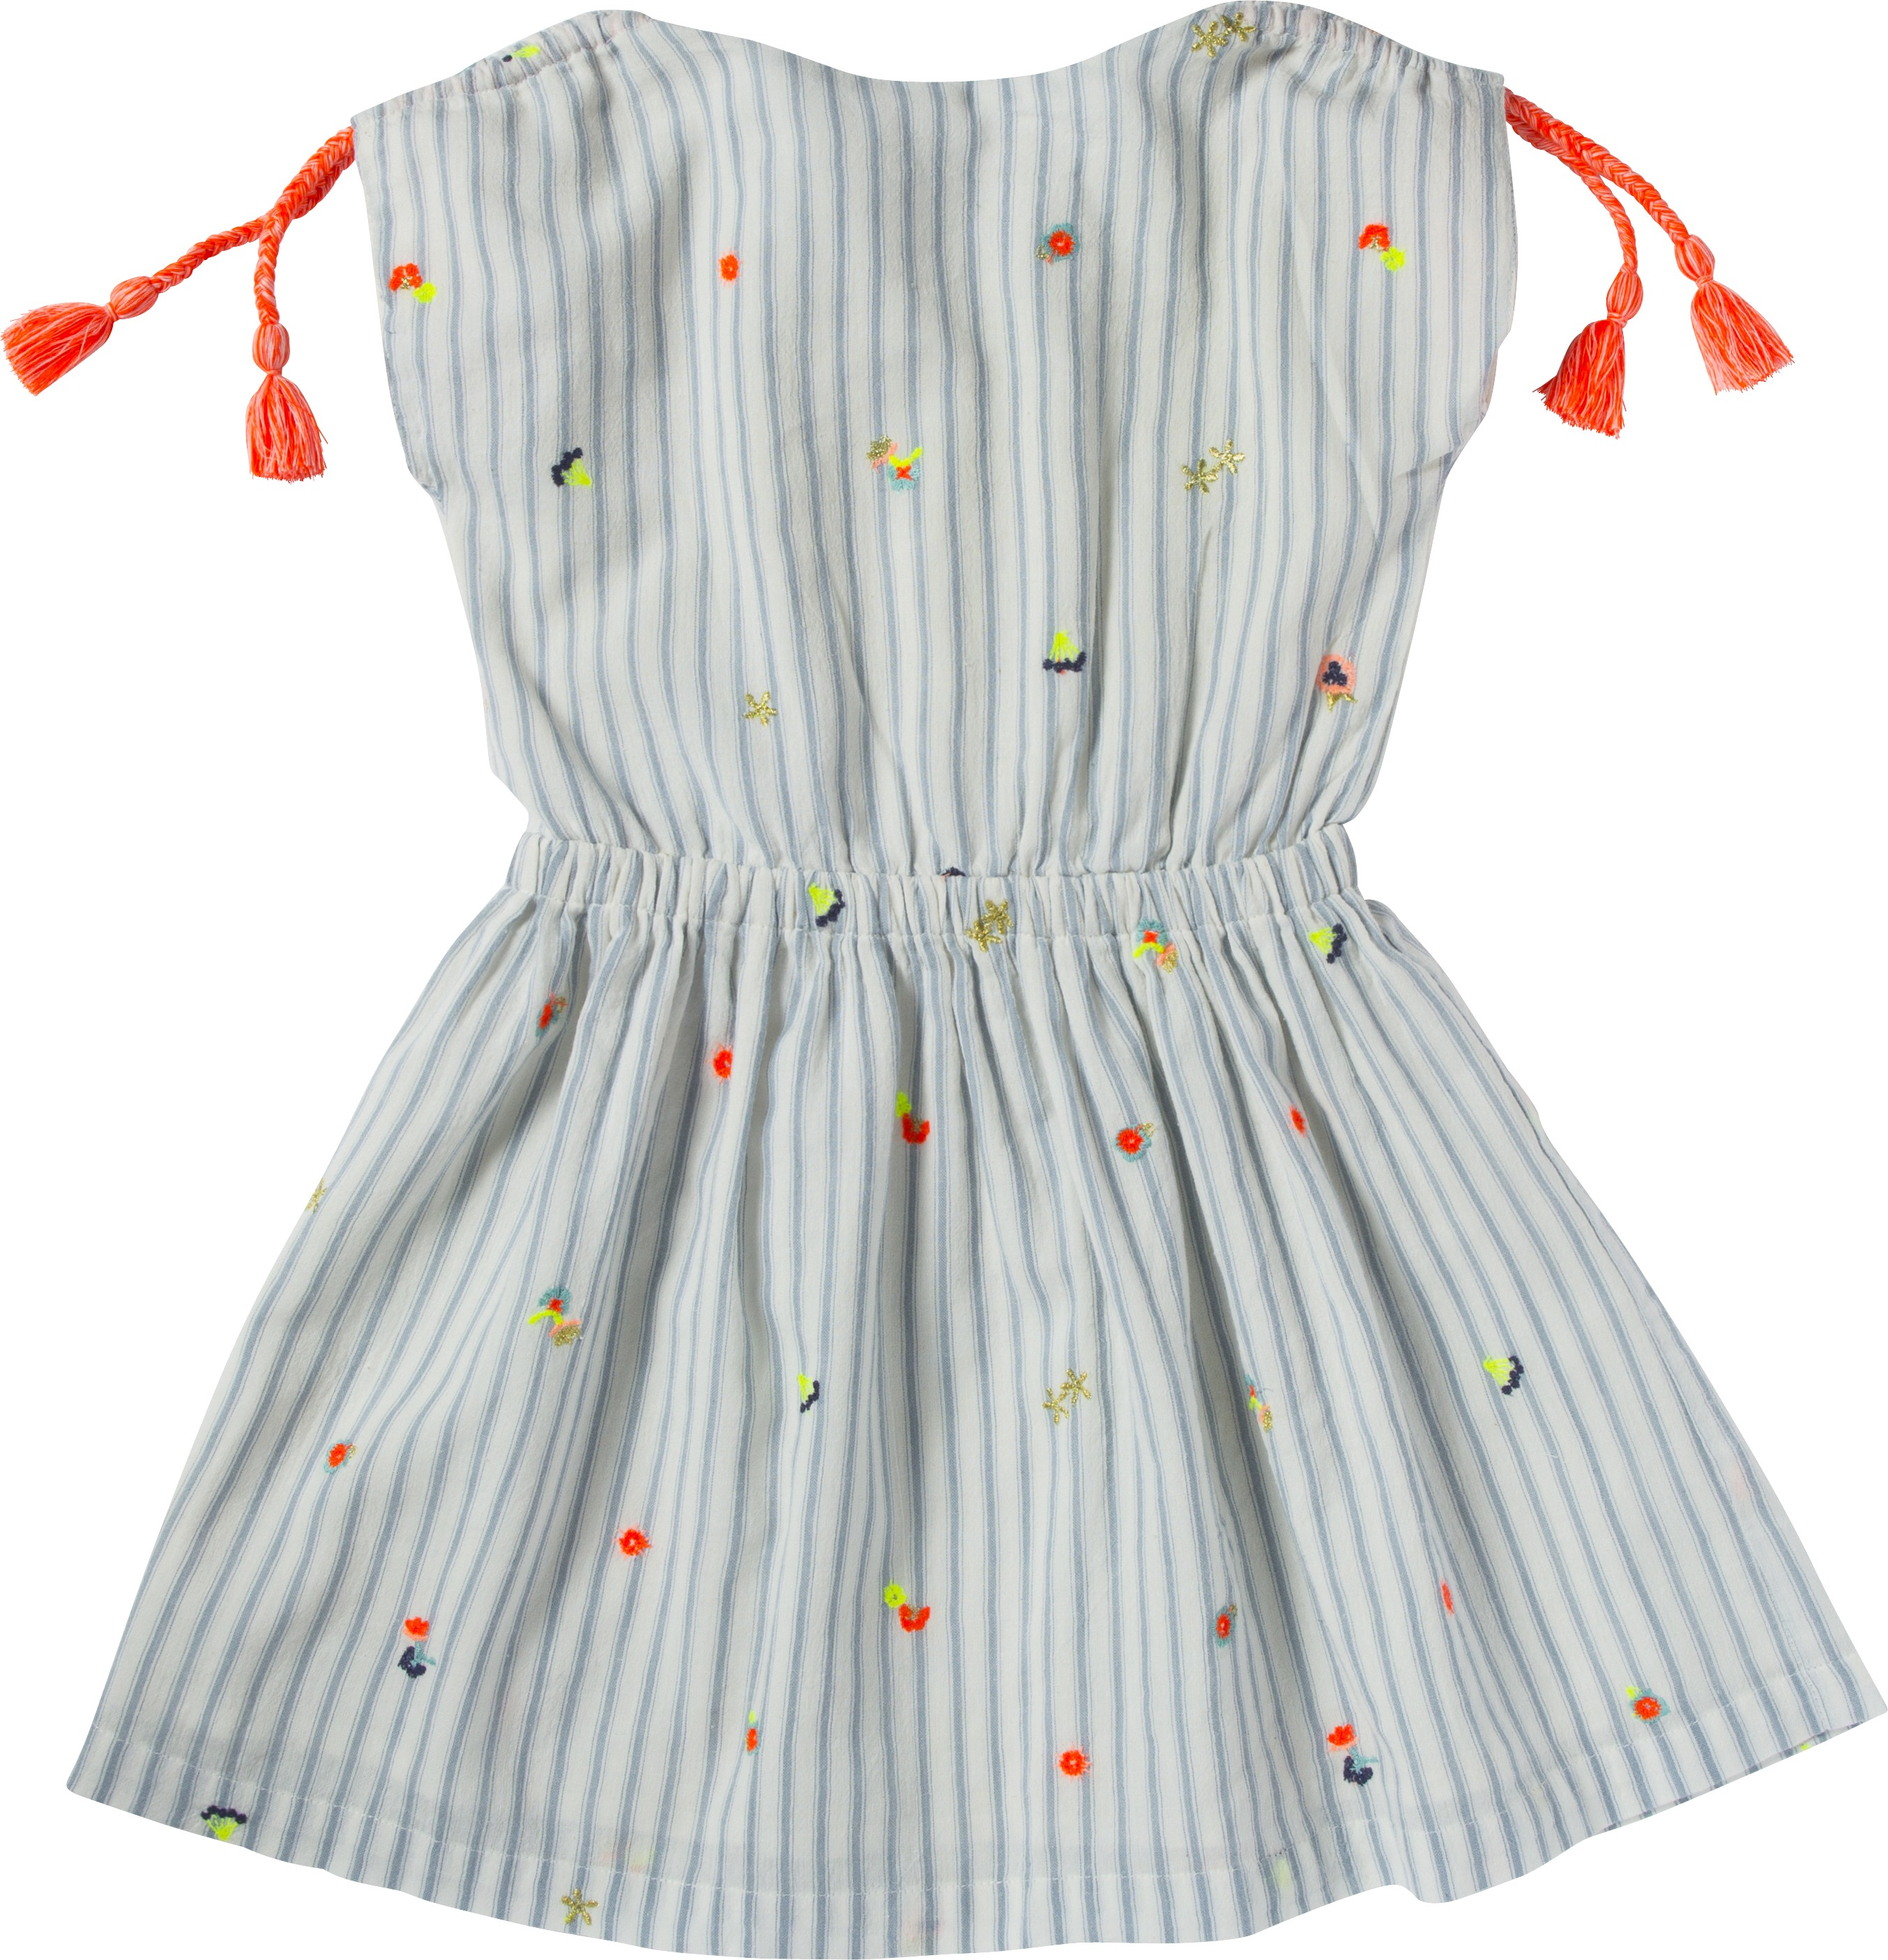 Dress With Stripes And Owers Embroideries Lison Vtements Enfant